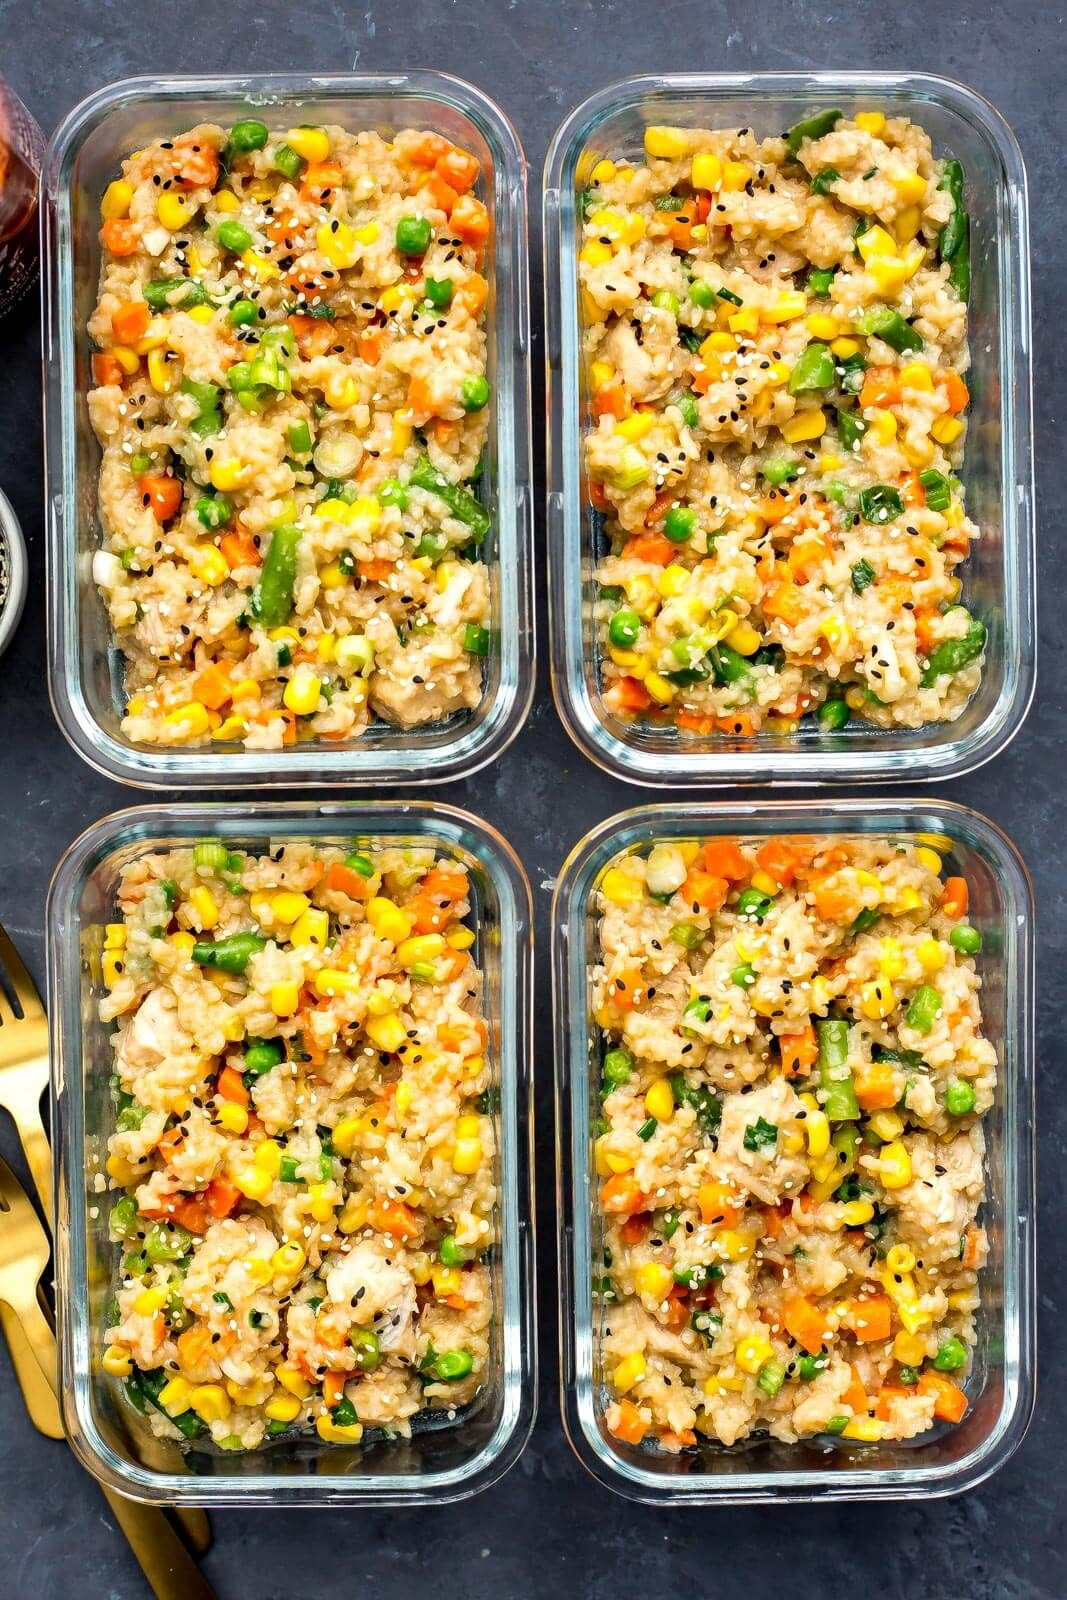 Instant Pot Chicken Fried Rice Meal Prep Bowls - The Girl on Bloor